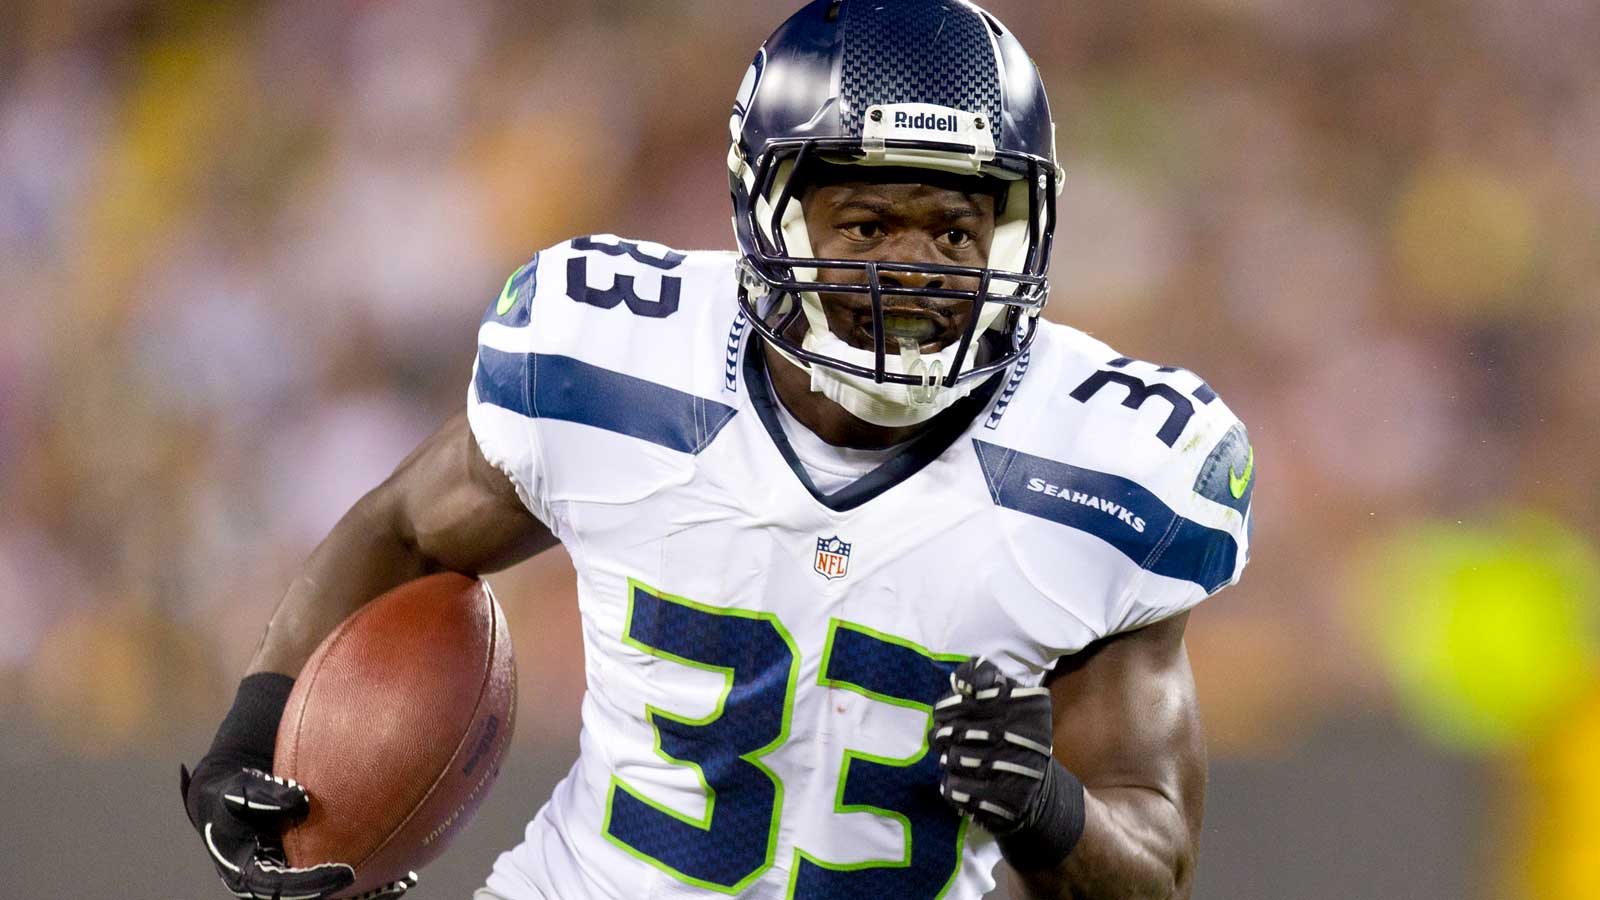 Cowboys Blog - Cowboys Trade for Running Back Christine Michael